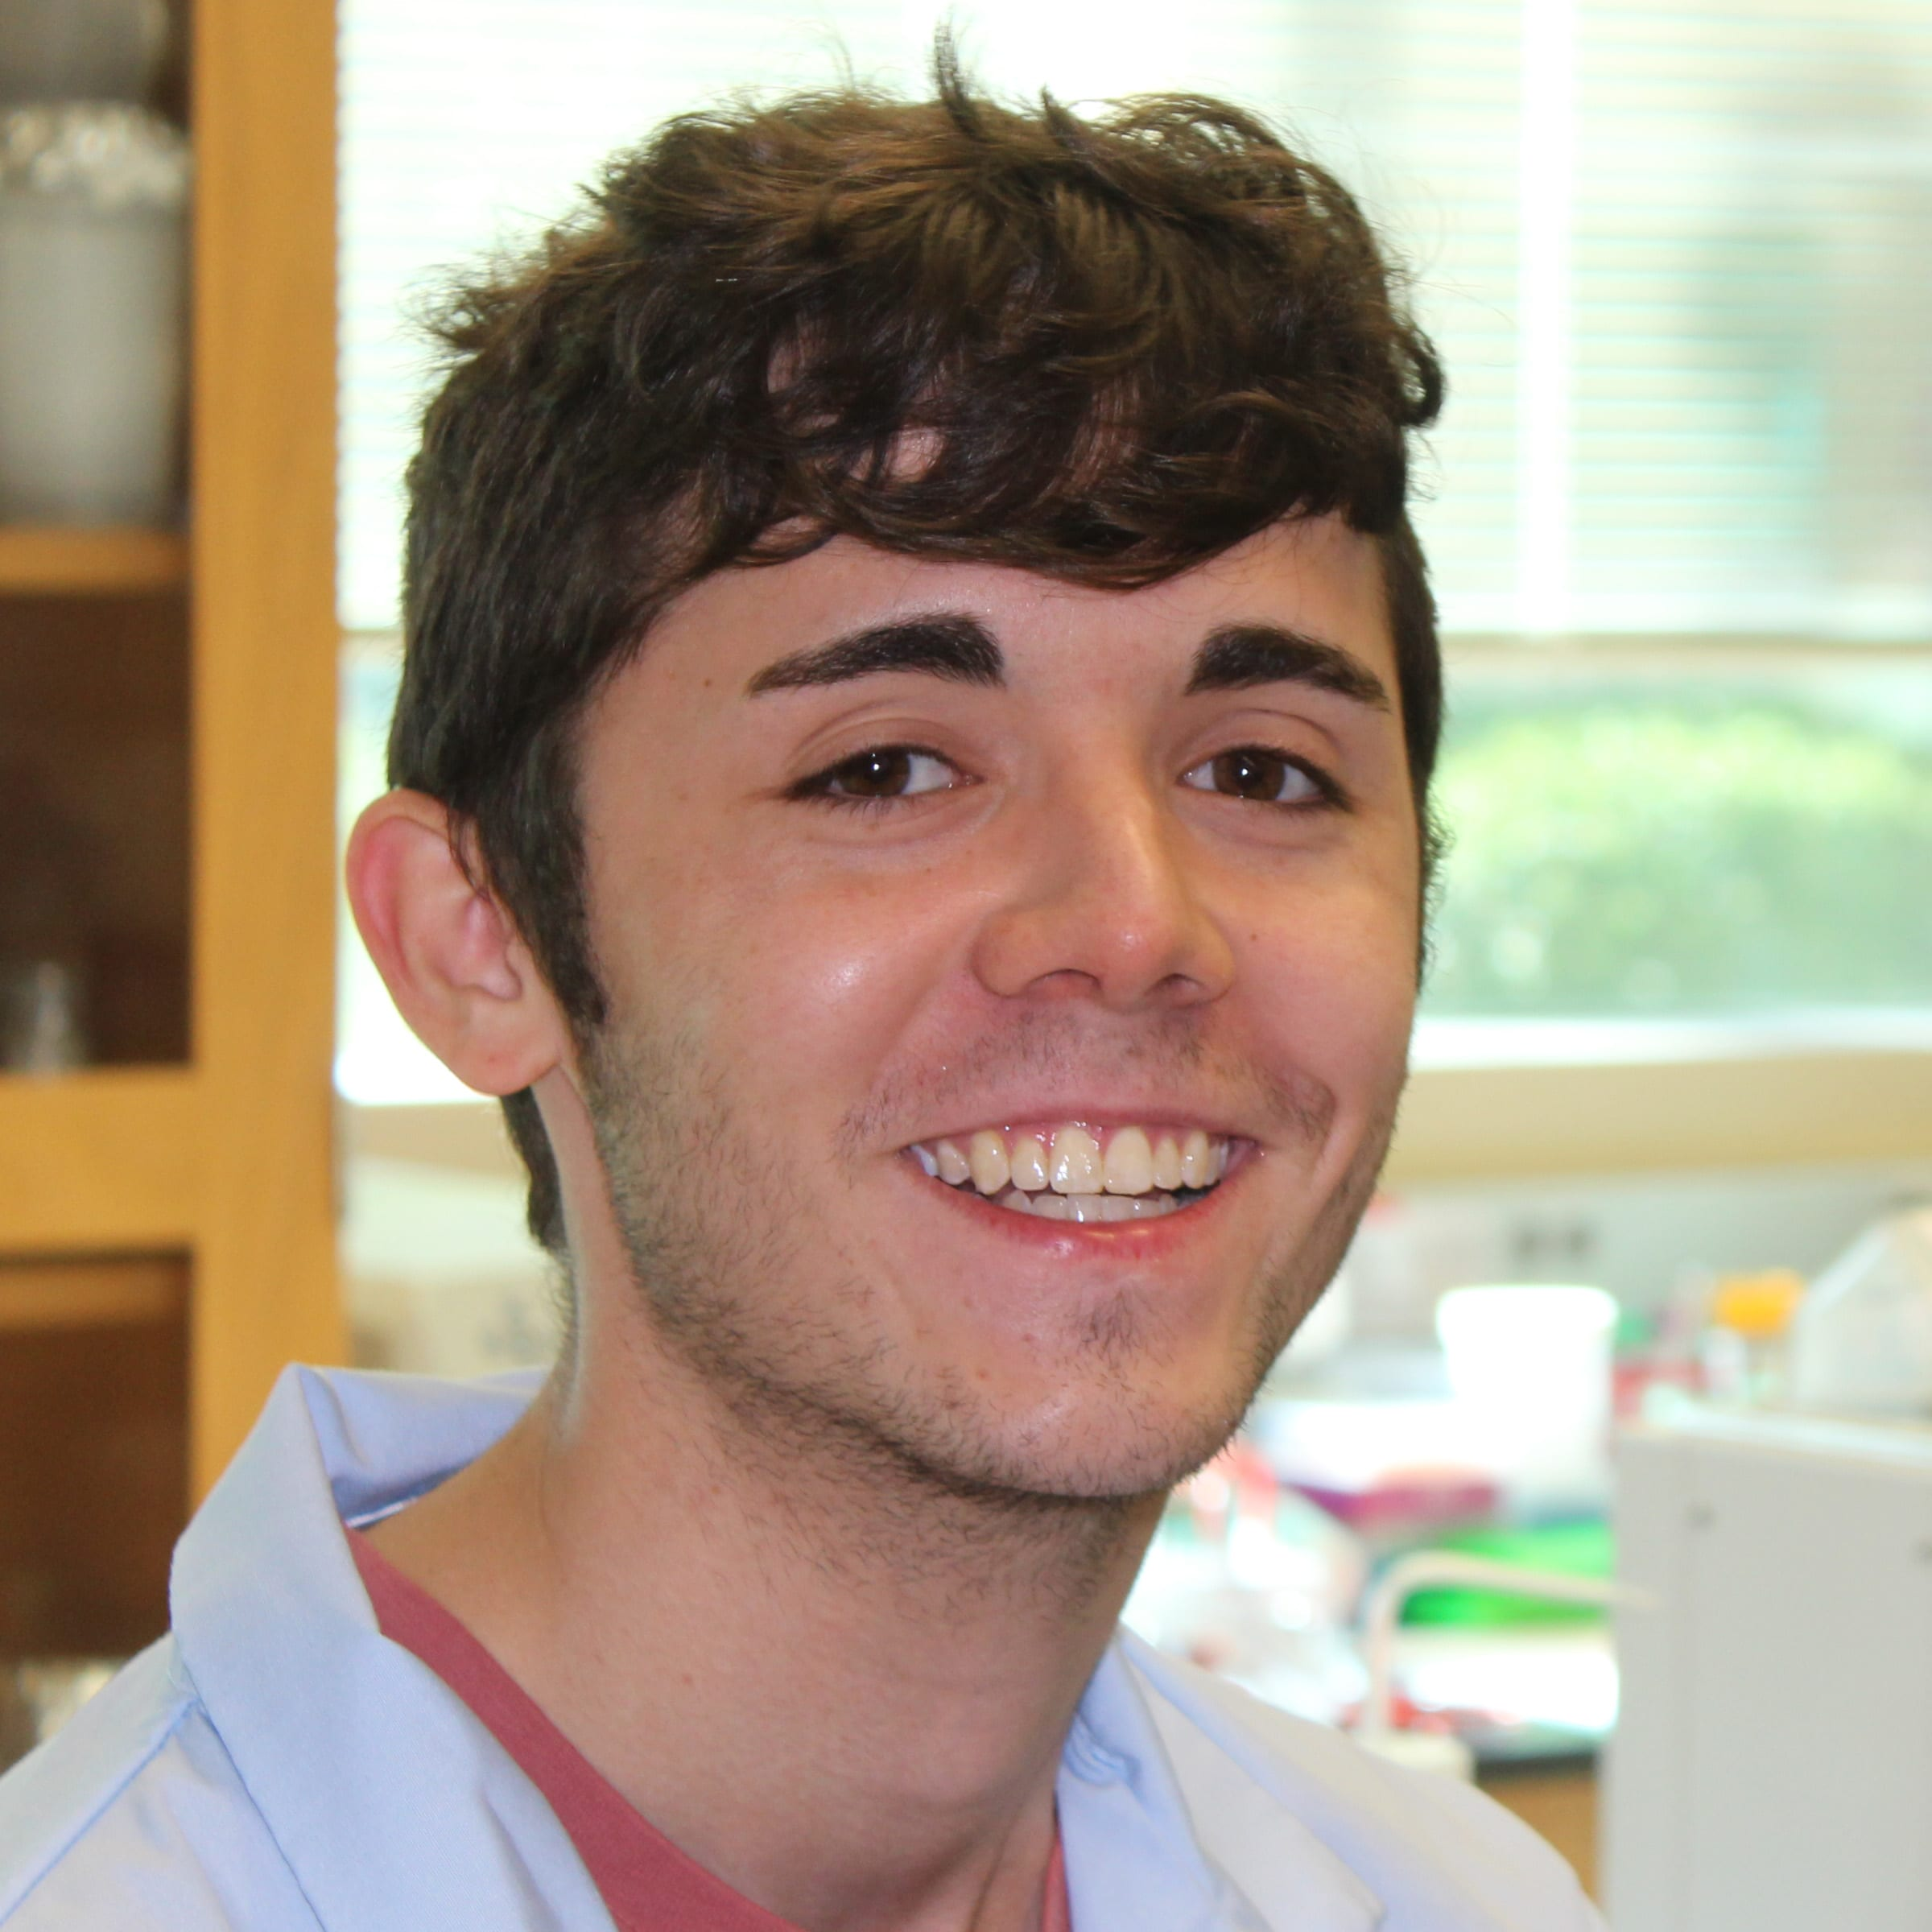 lab members taube lab major and biochemistry minor his interest for research was cultivated during a summer internship at md anderson during his high school years